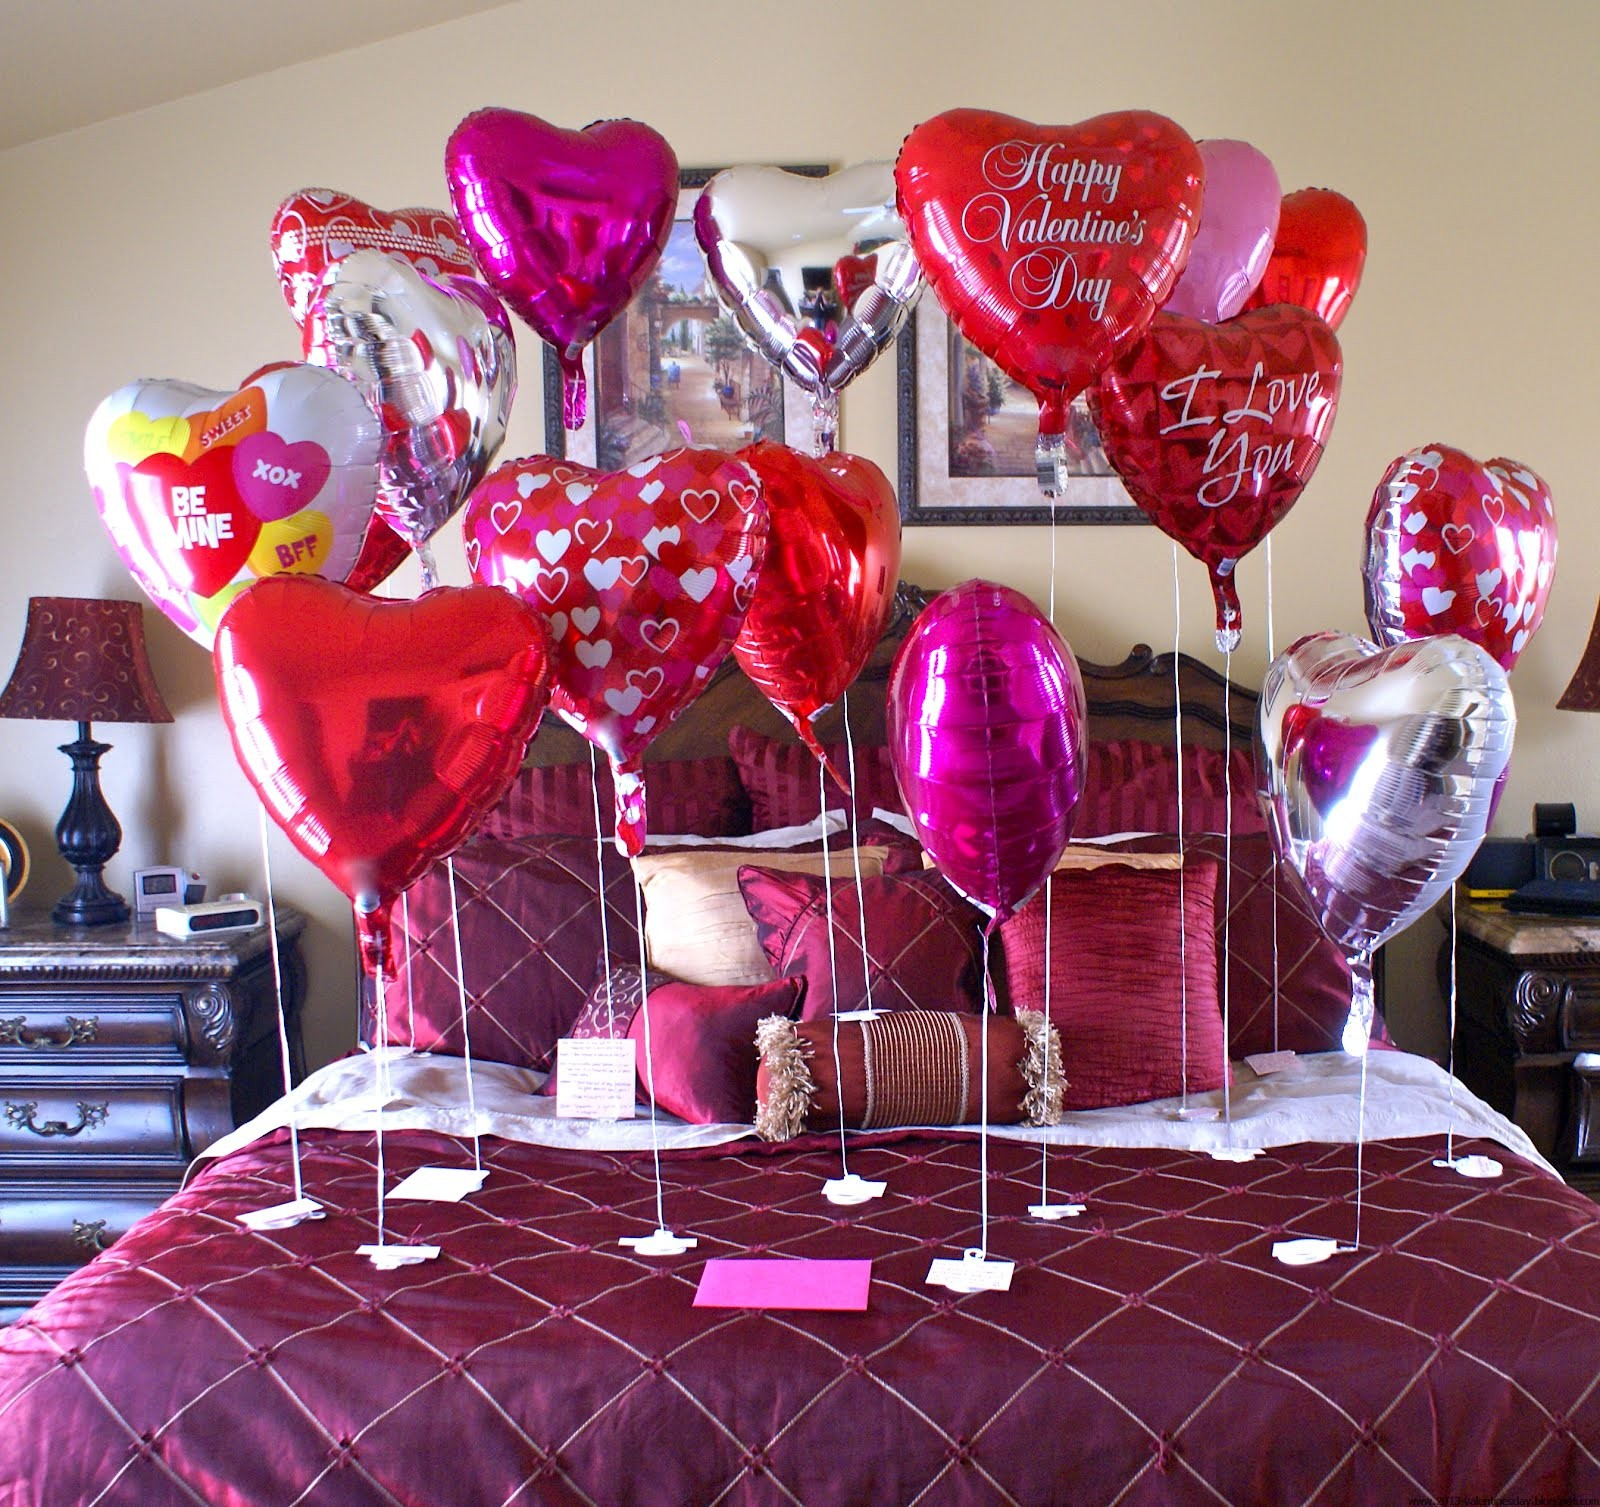 valentine's+day+bed+decoration+(9)